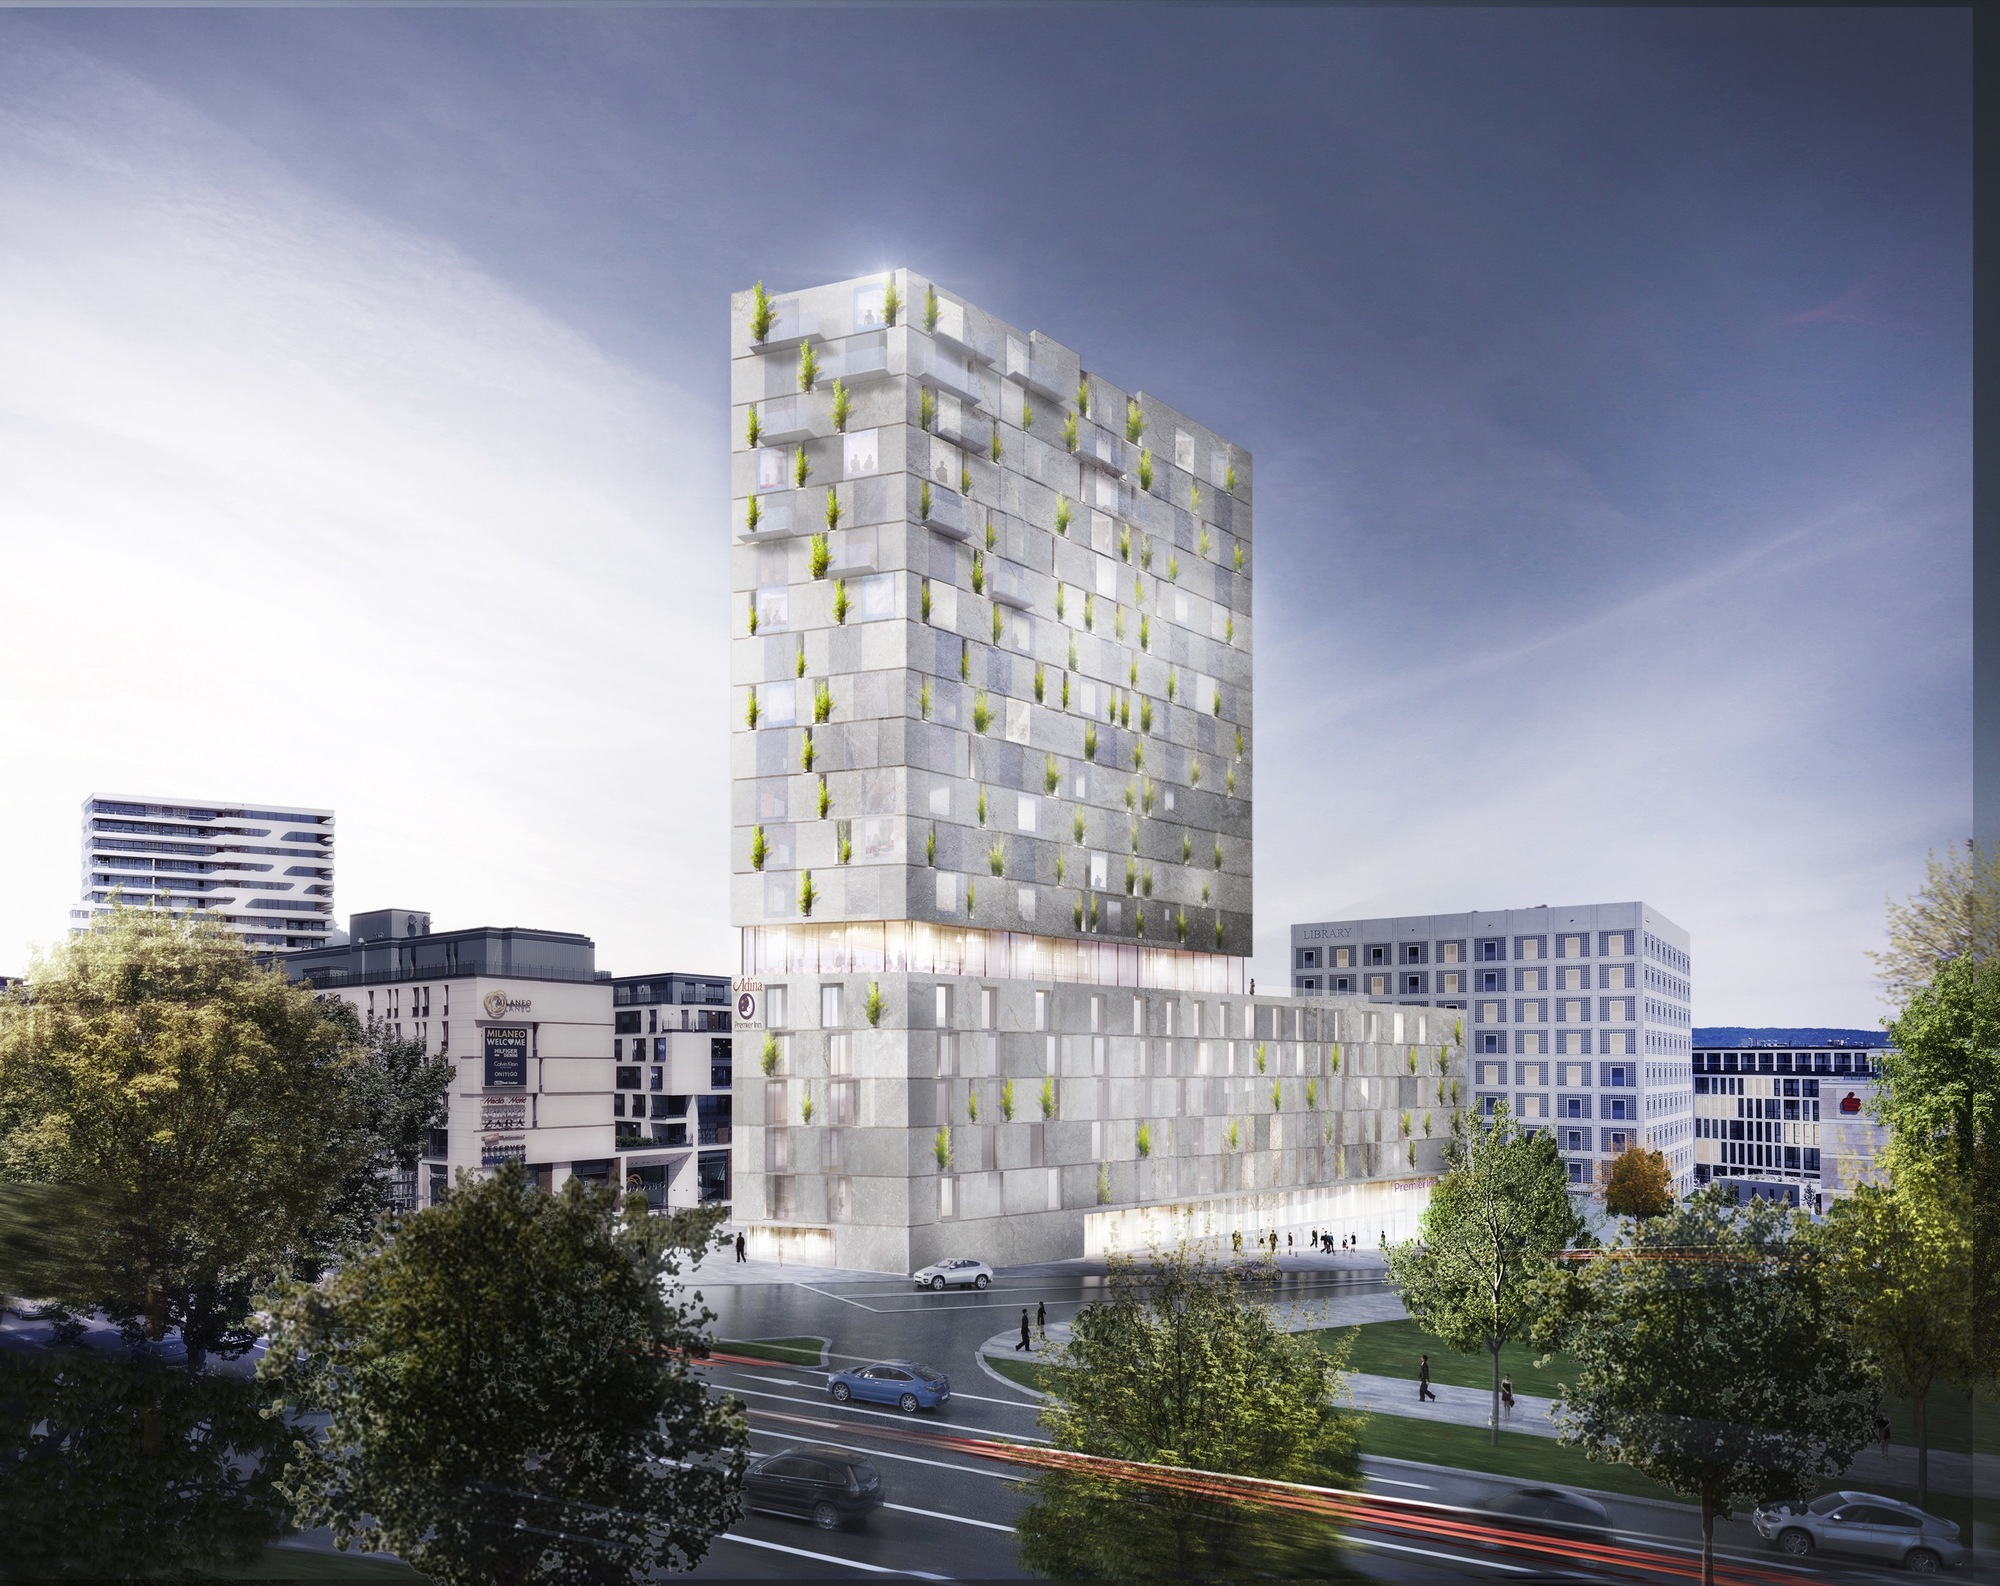 RKW Architektur + Wins Competition for Stone-Clad Mixed-Use Building in  Stuttgart,